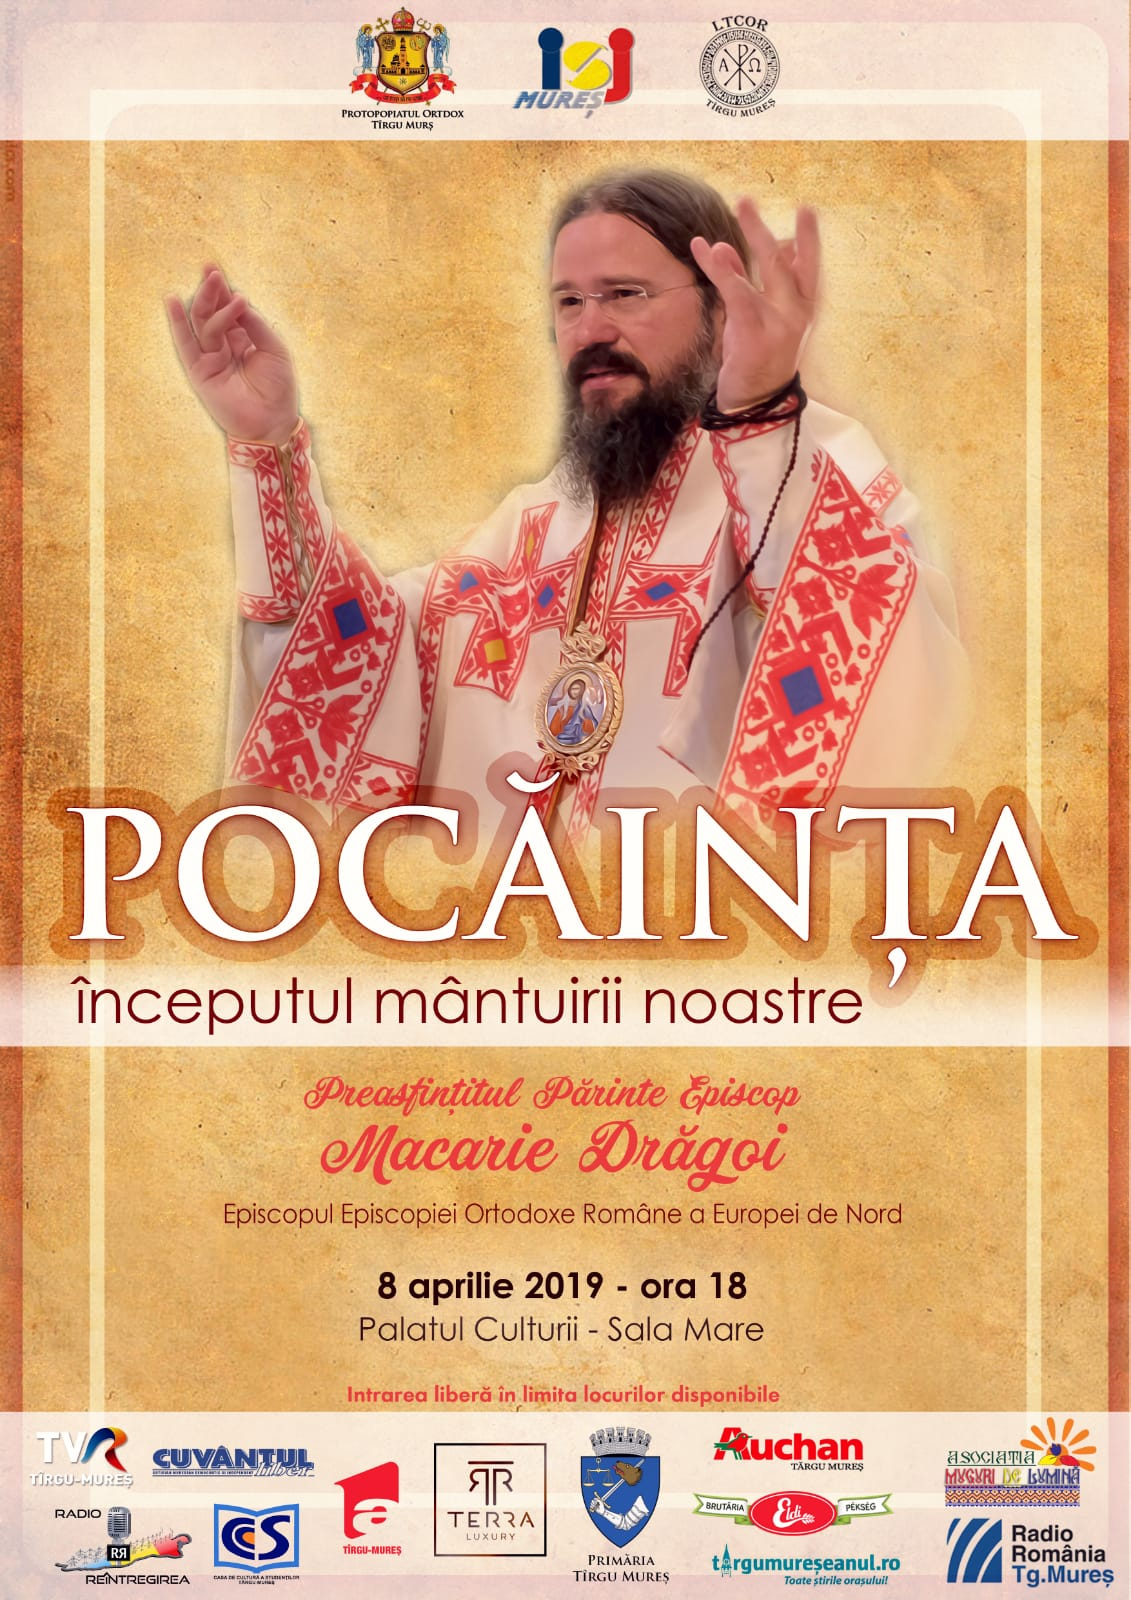 """""""Repentance, the begining of our salvation"""", conference to be held by His Grace Macarie, Bishop of Northern Europe, on April 8, 2019 in Targu-Mures, Romania"""